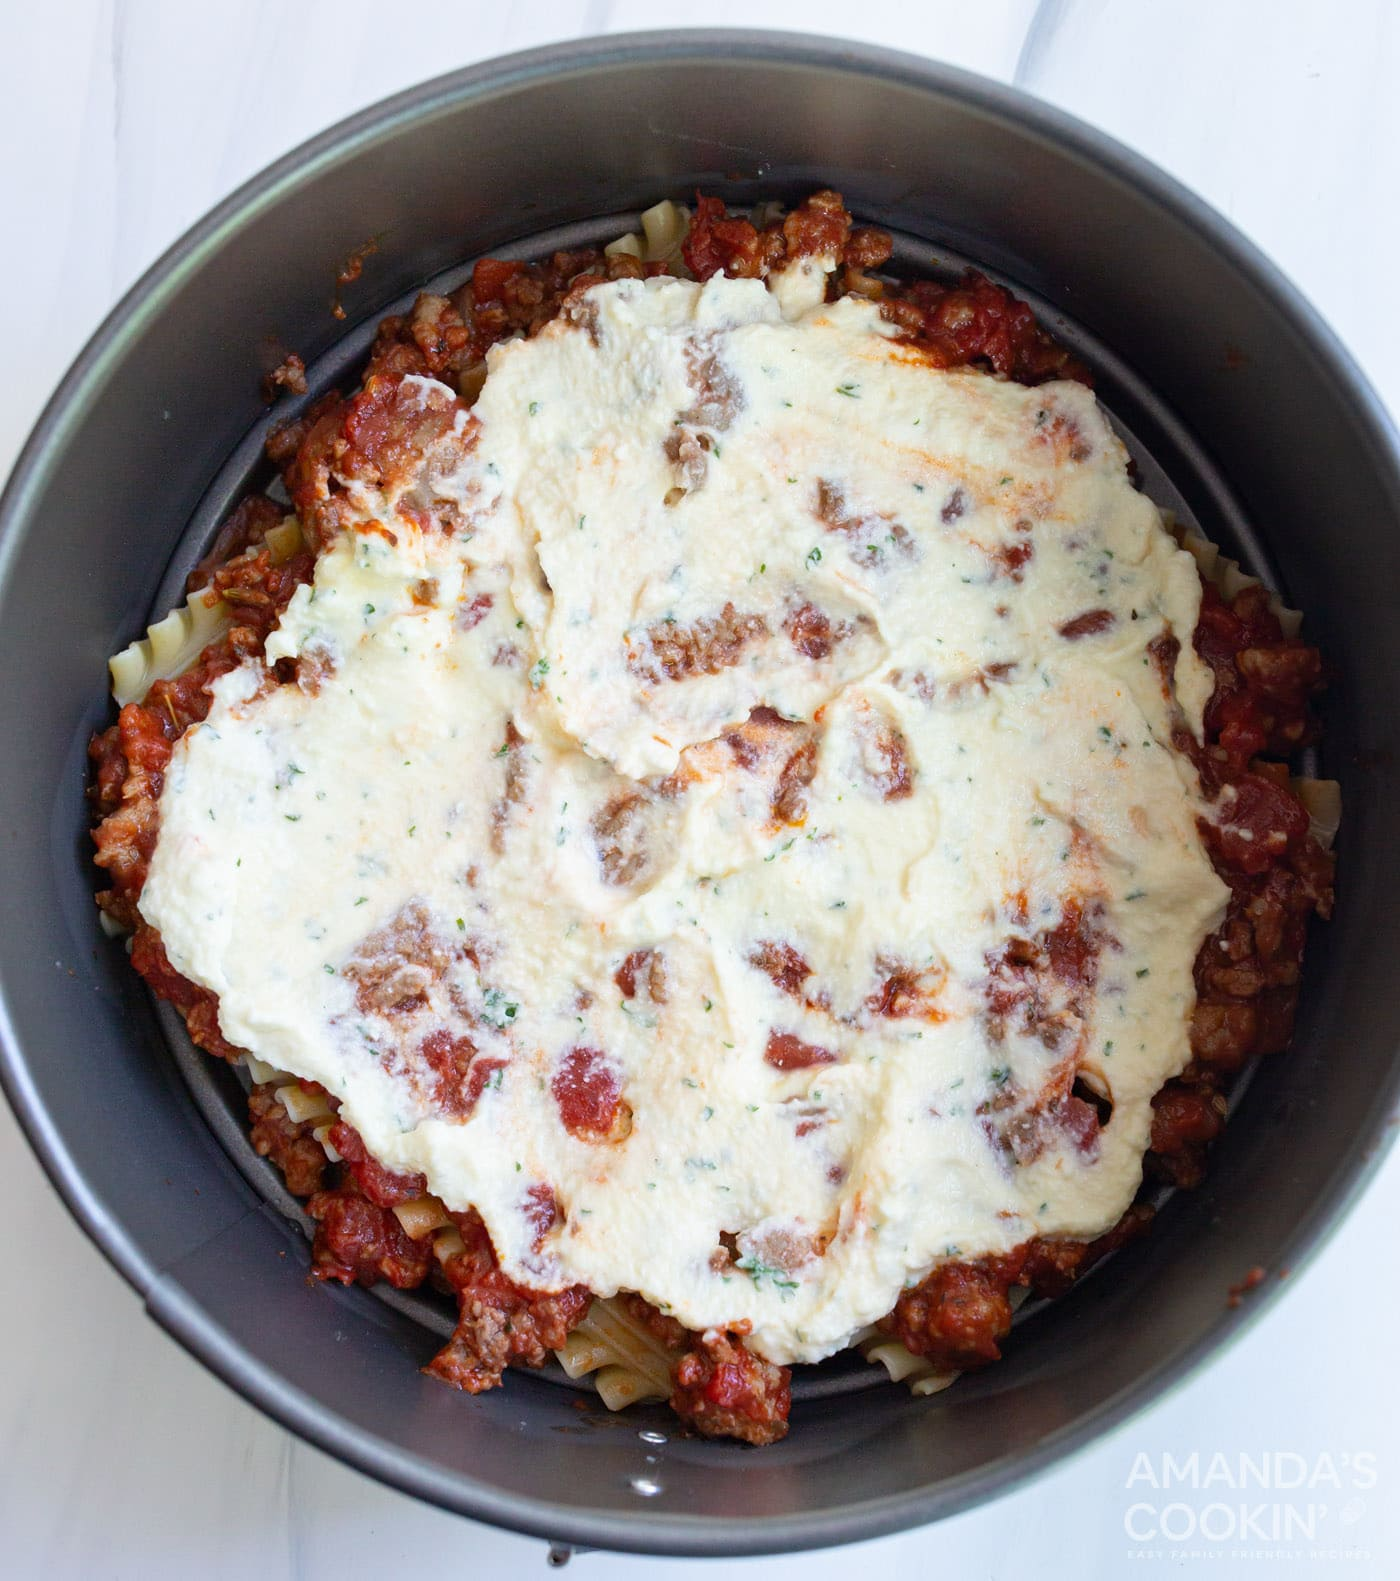 ricotta mixture on top of lasagna noodles in a pan